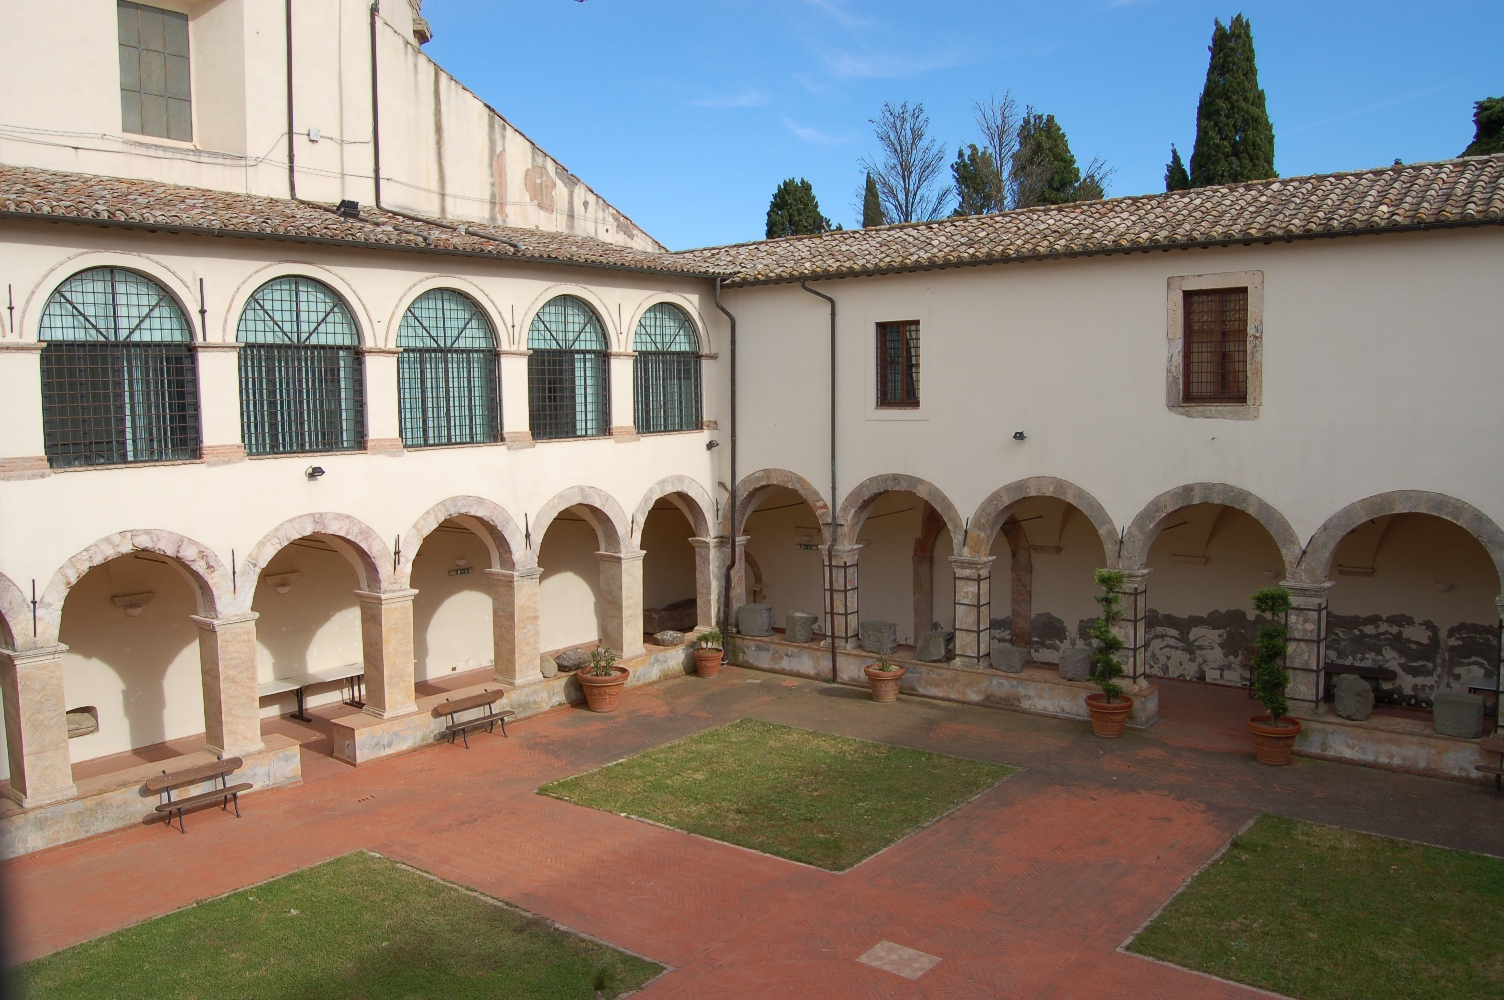 Inside courtyard of the Cultural Pole of Tolfa - Source: www.poloculturale.tolfa.it